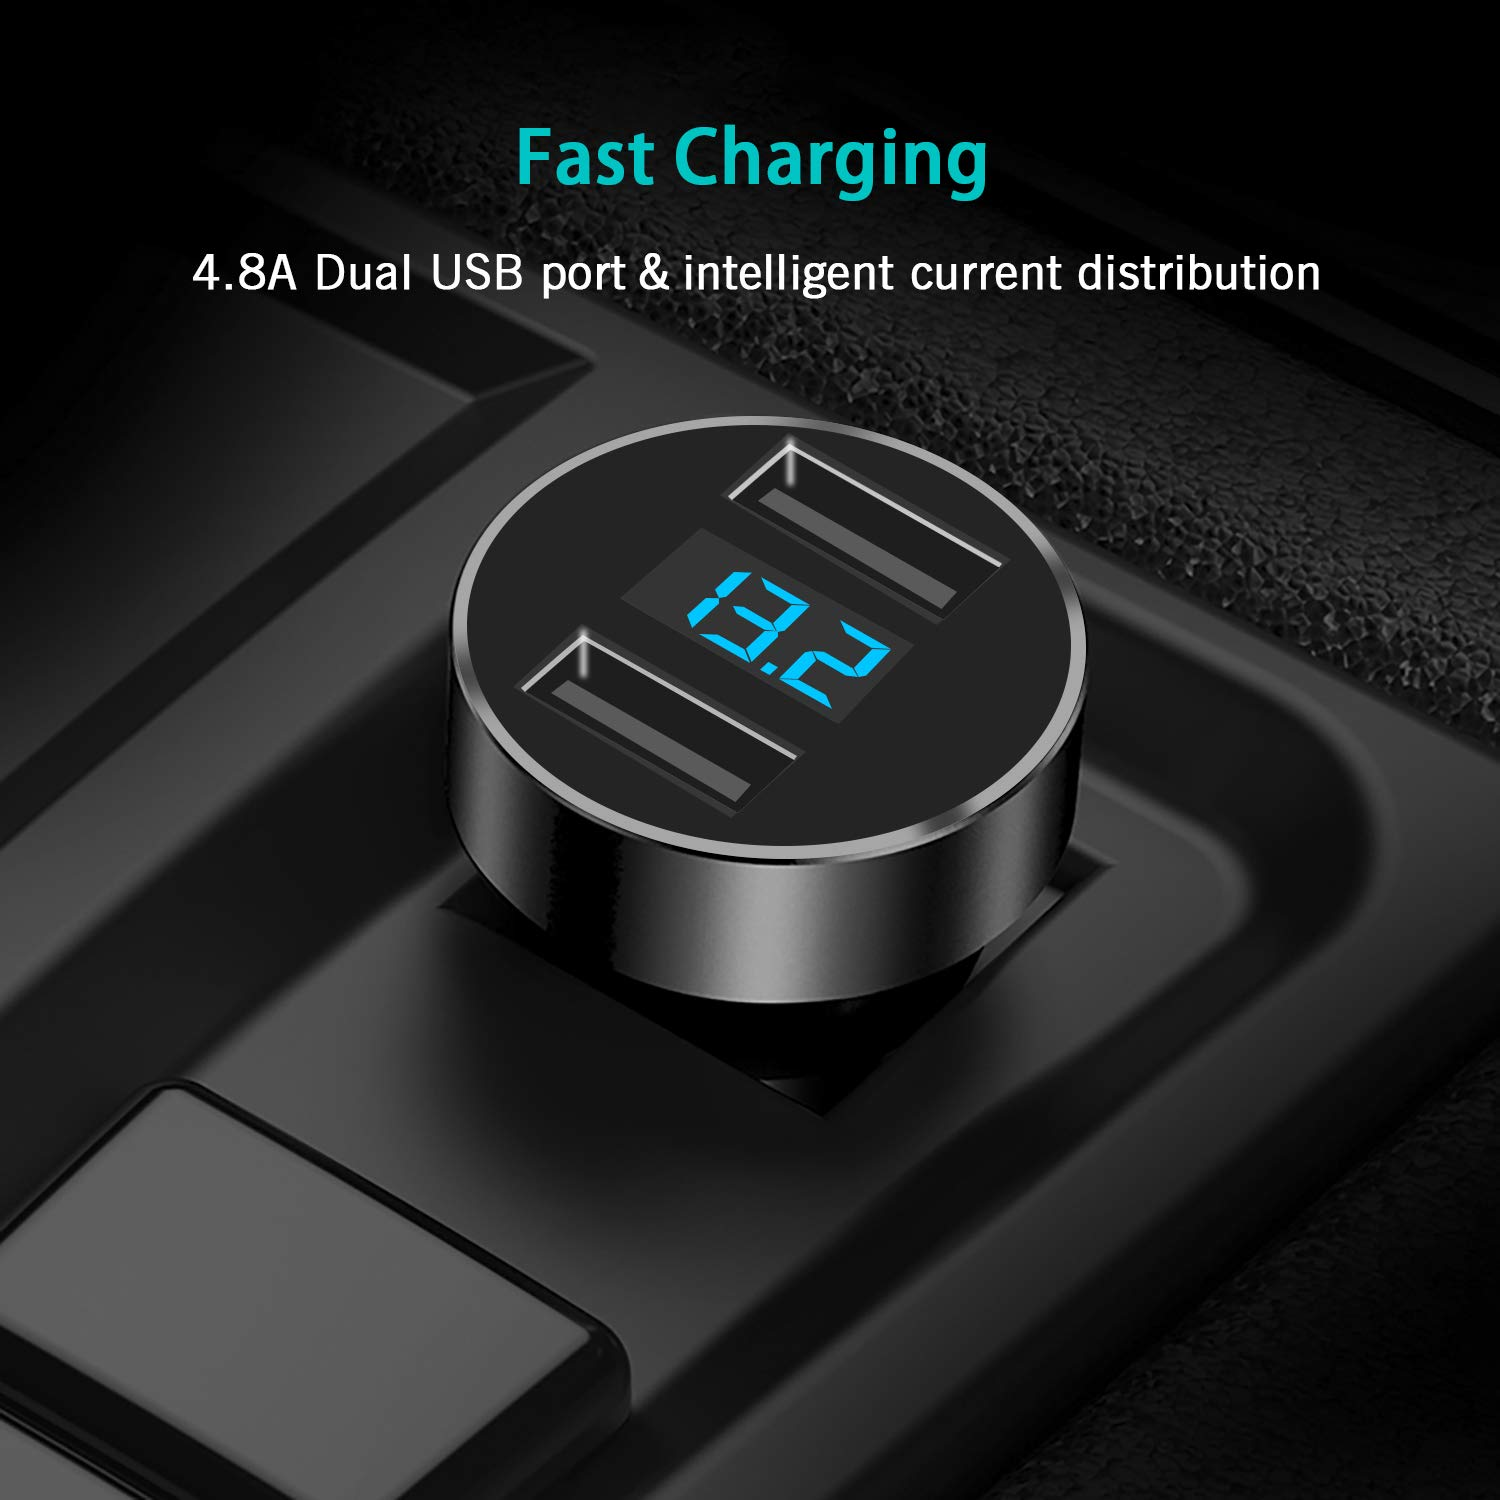 HTC and More Galaxy S9 S8 S7 S6 Edge Note HX Studio USB Car Charger 4.8A Dual Car Adapter,2 USB Smart Port Charger Compatible for iPhone Xs XS Max XR X 8 7 Plus Nexus iPad Pro Air Mini LG